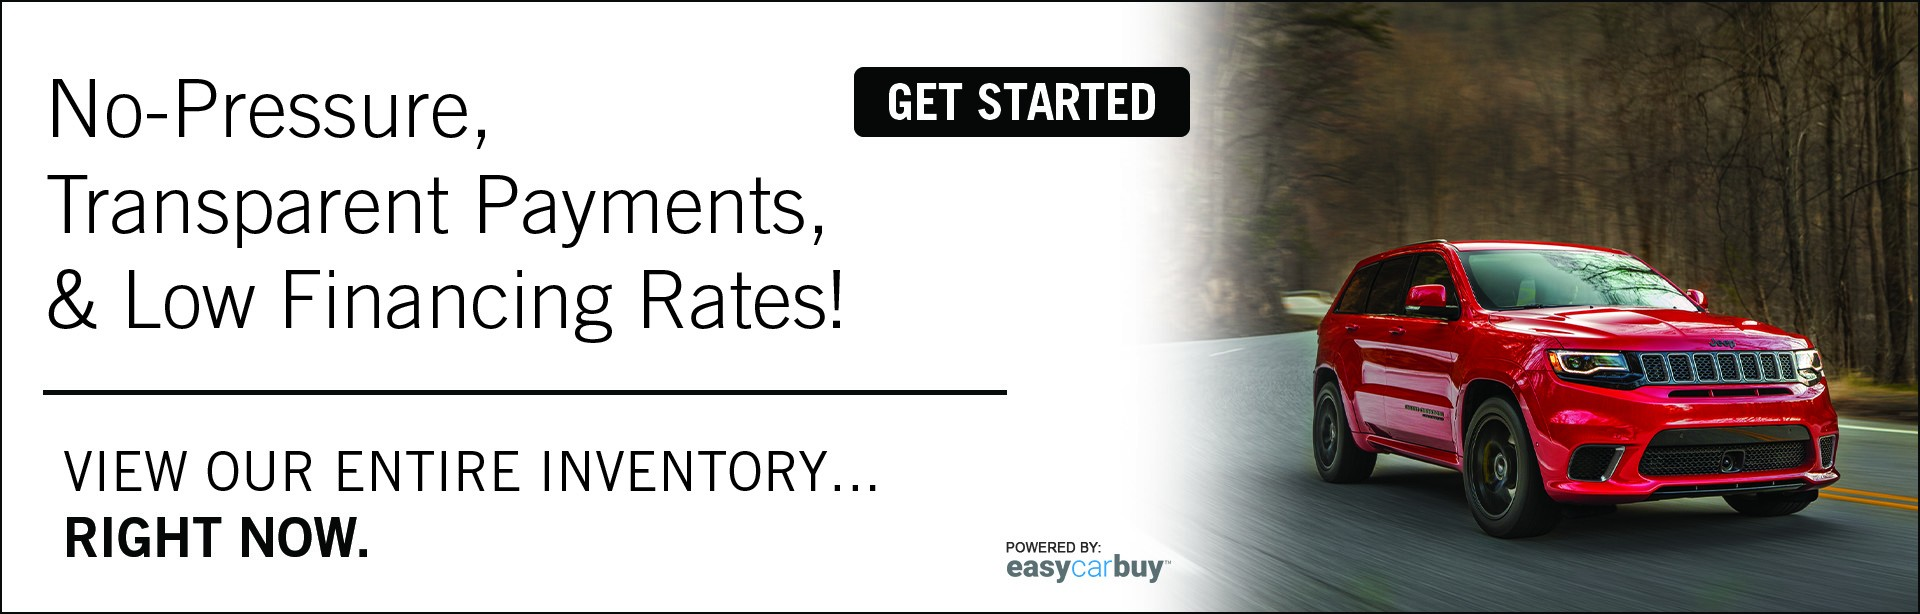 No-pressure, transparent payments, & low financing rates. View Entire Inventory.